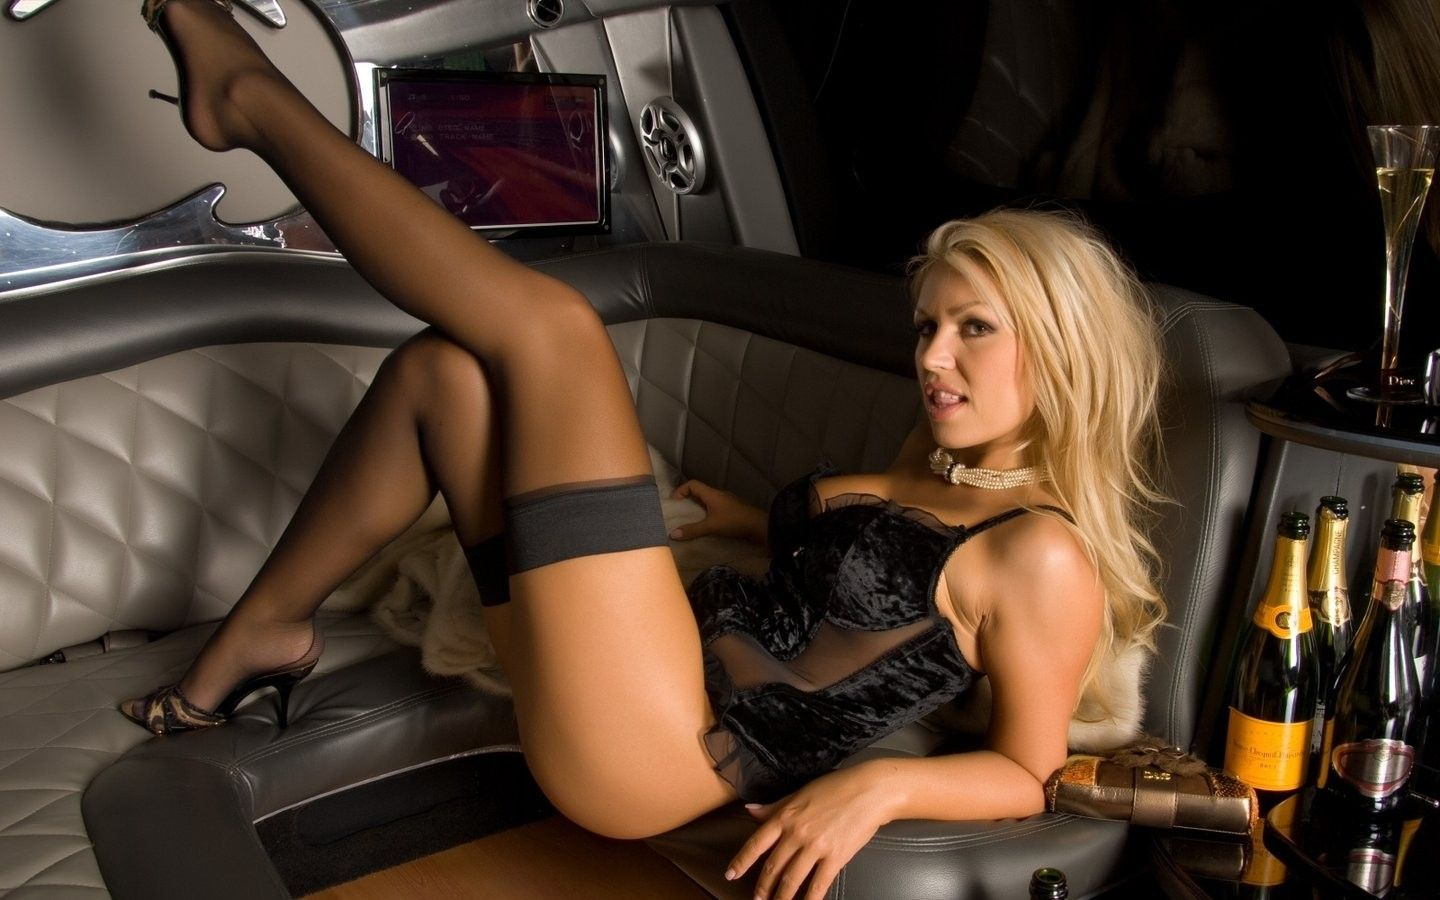 Private blonde stripper escort